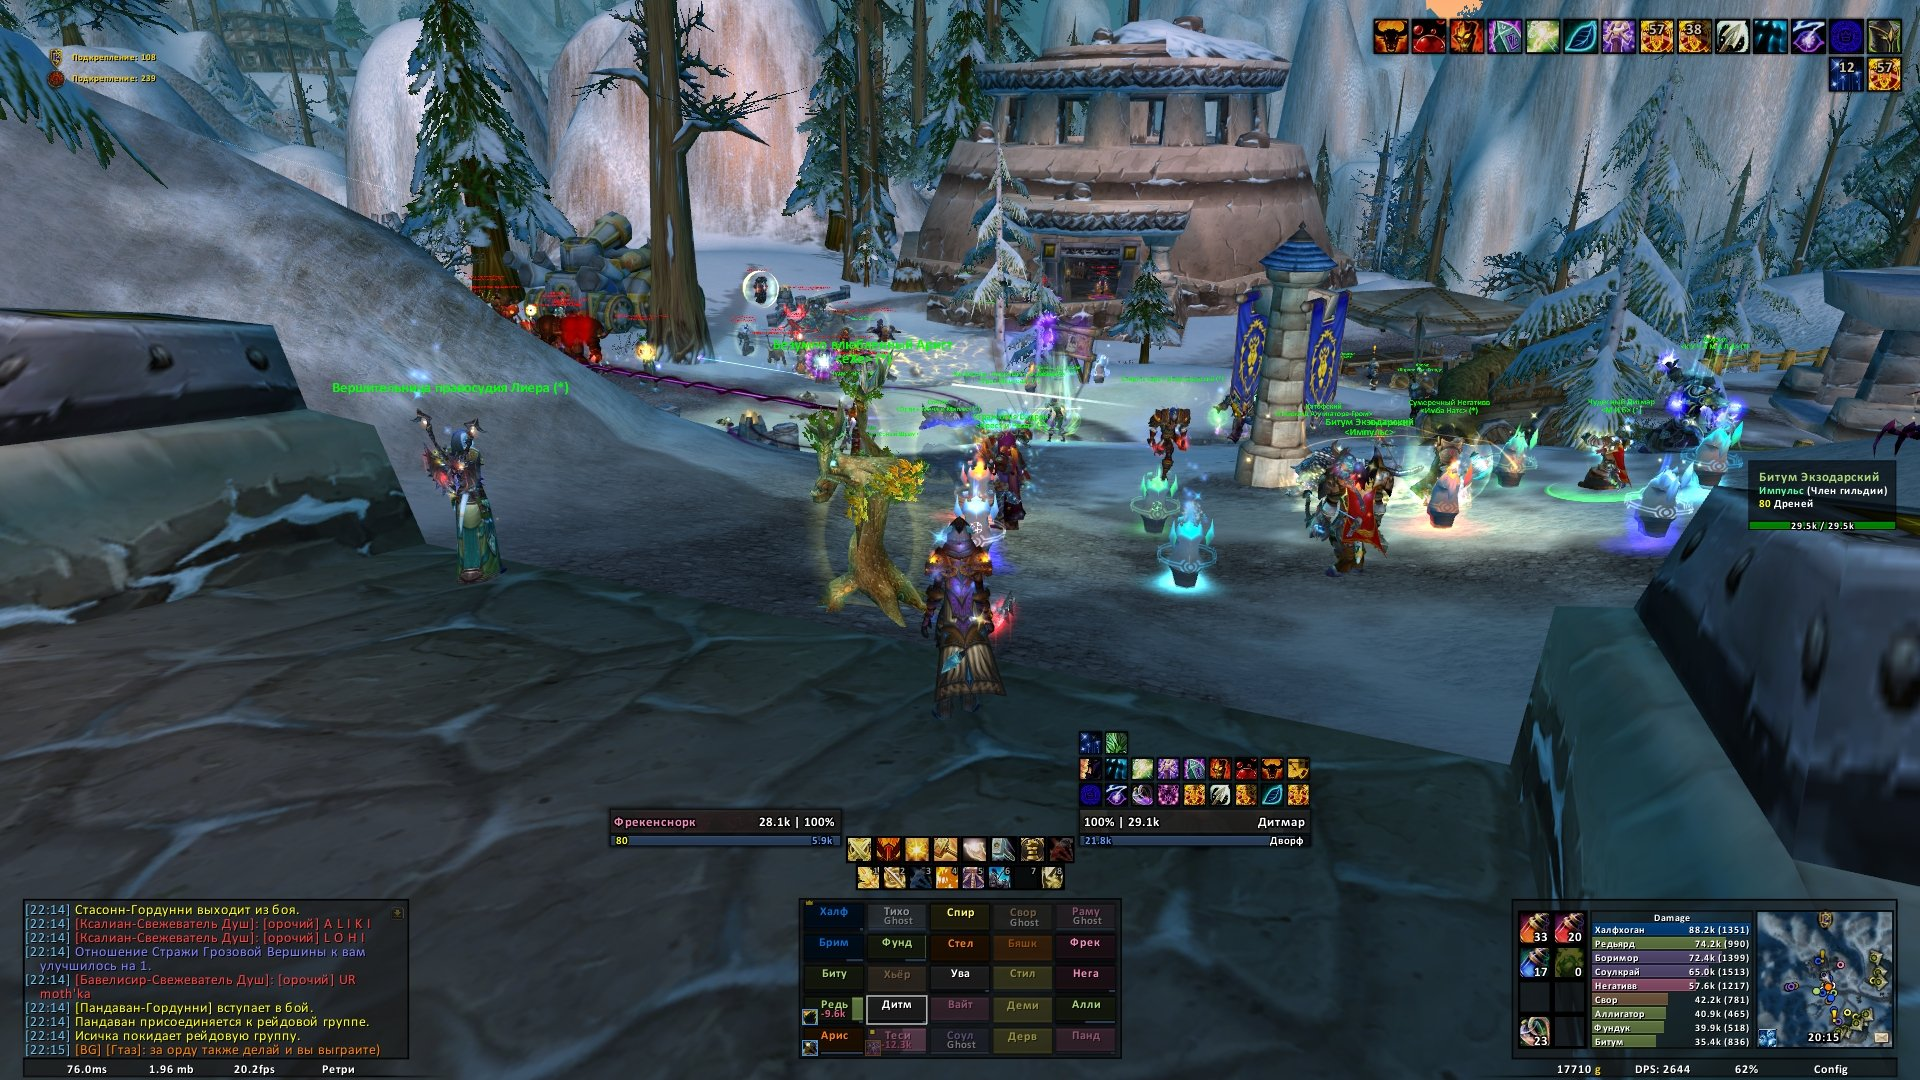 oUF mono : oUF: Layouts : World of Warcraft AddOns